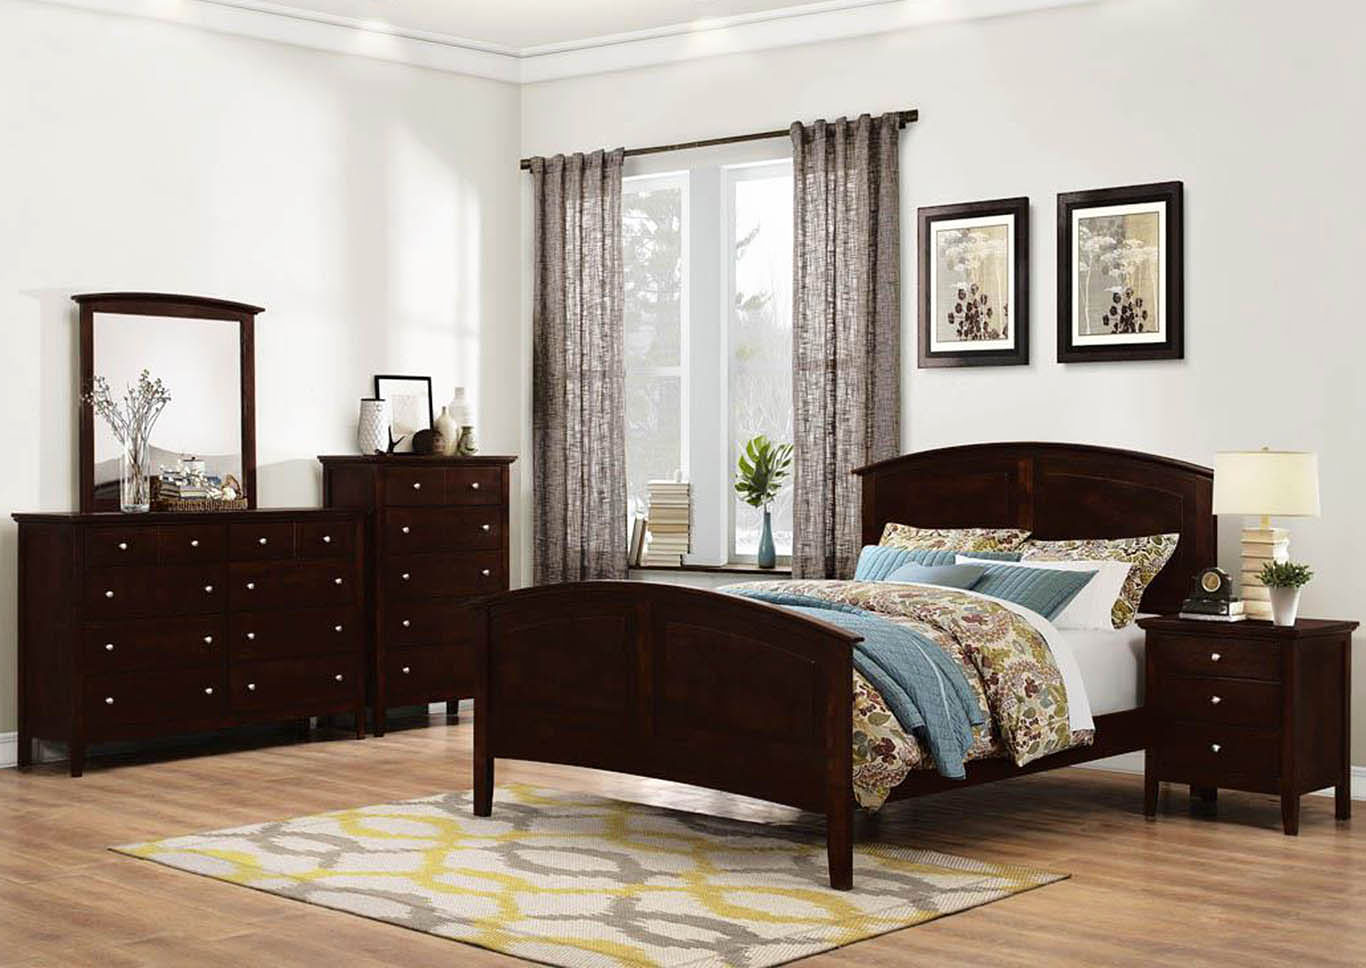 4 Piece Queen Bedroom Set,Global Trading